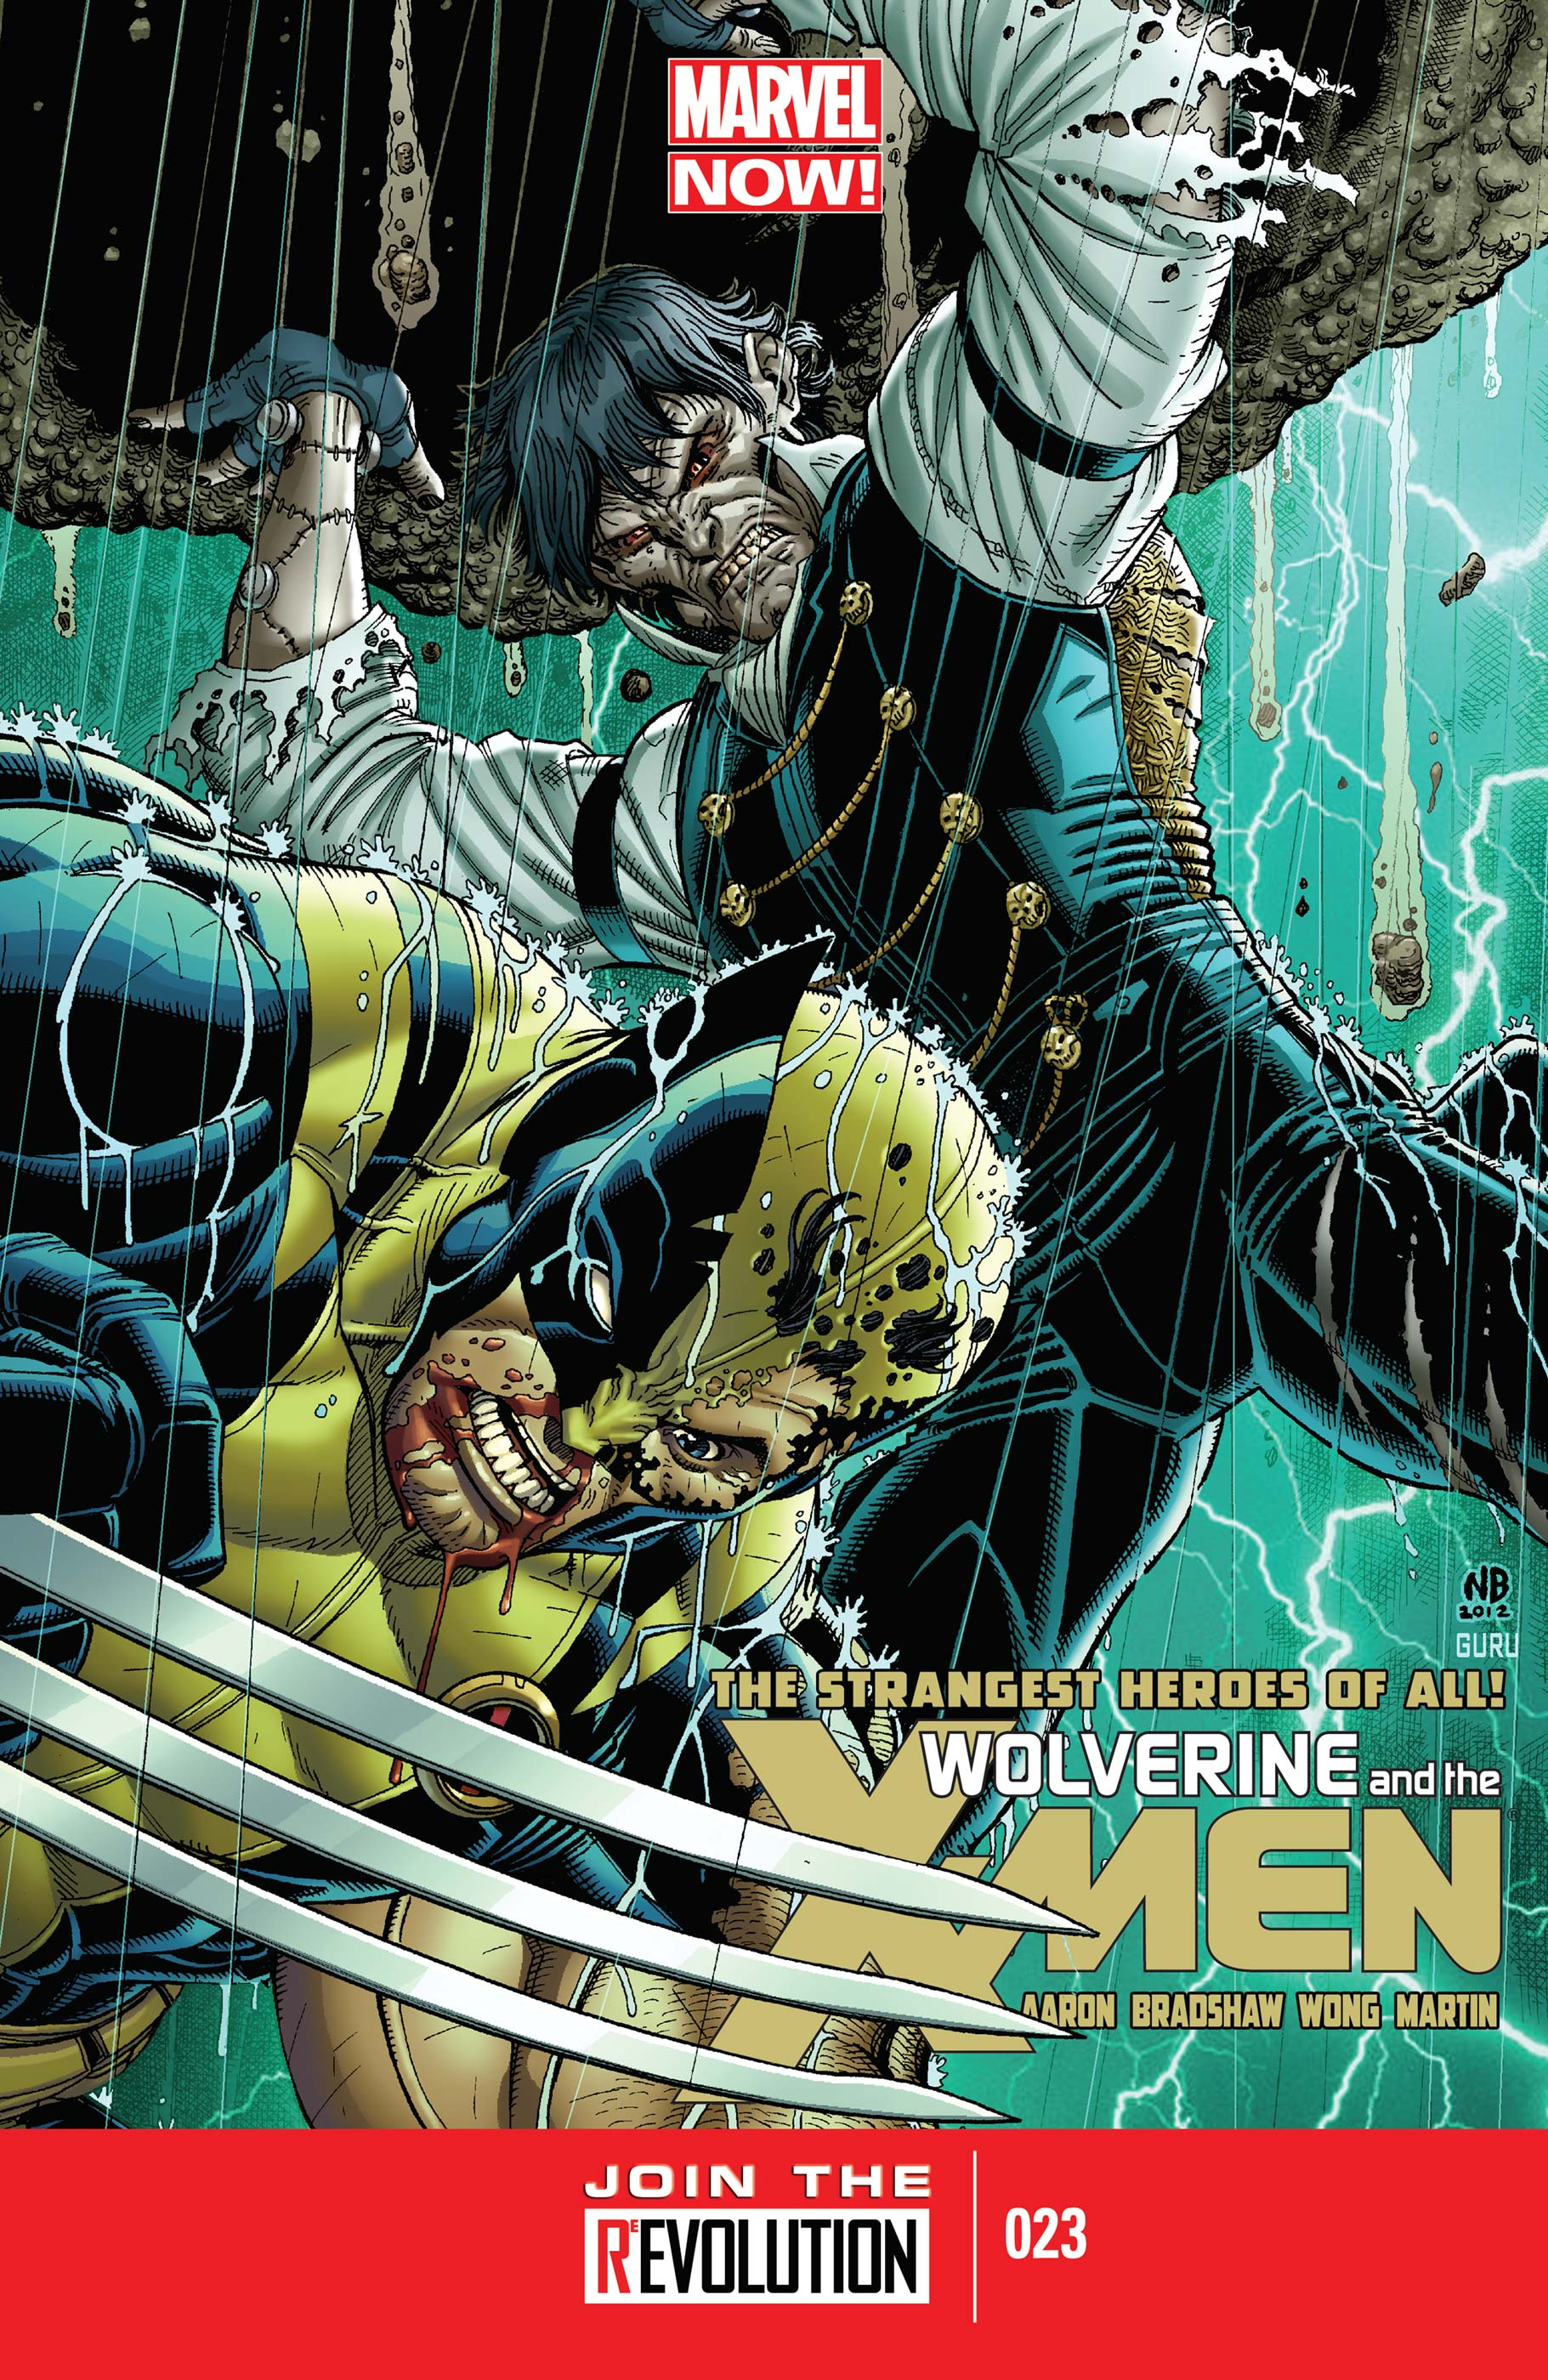 Wolverine & the X-Men (2011) #23